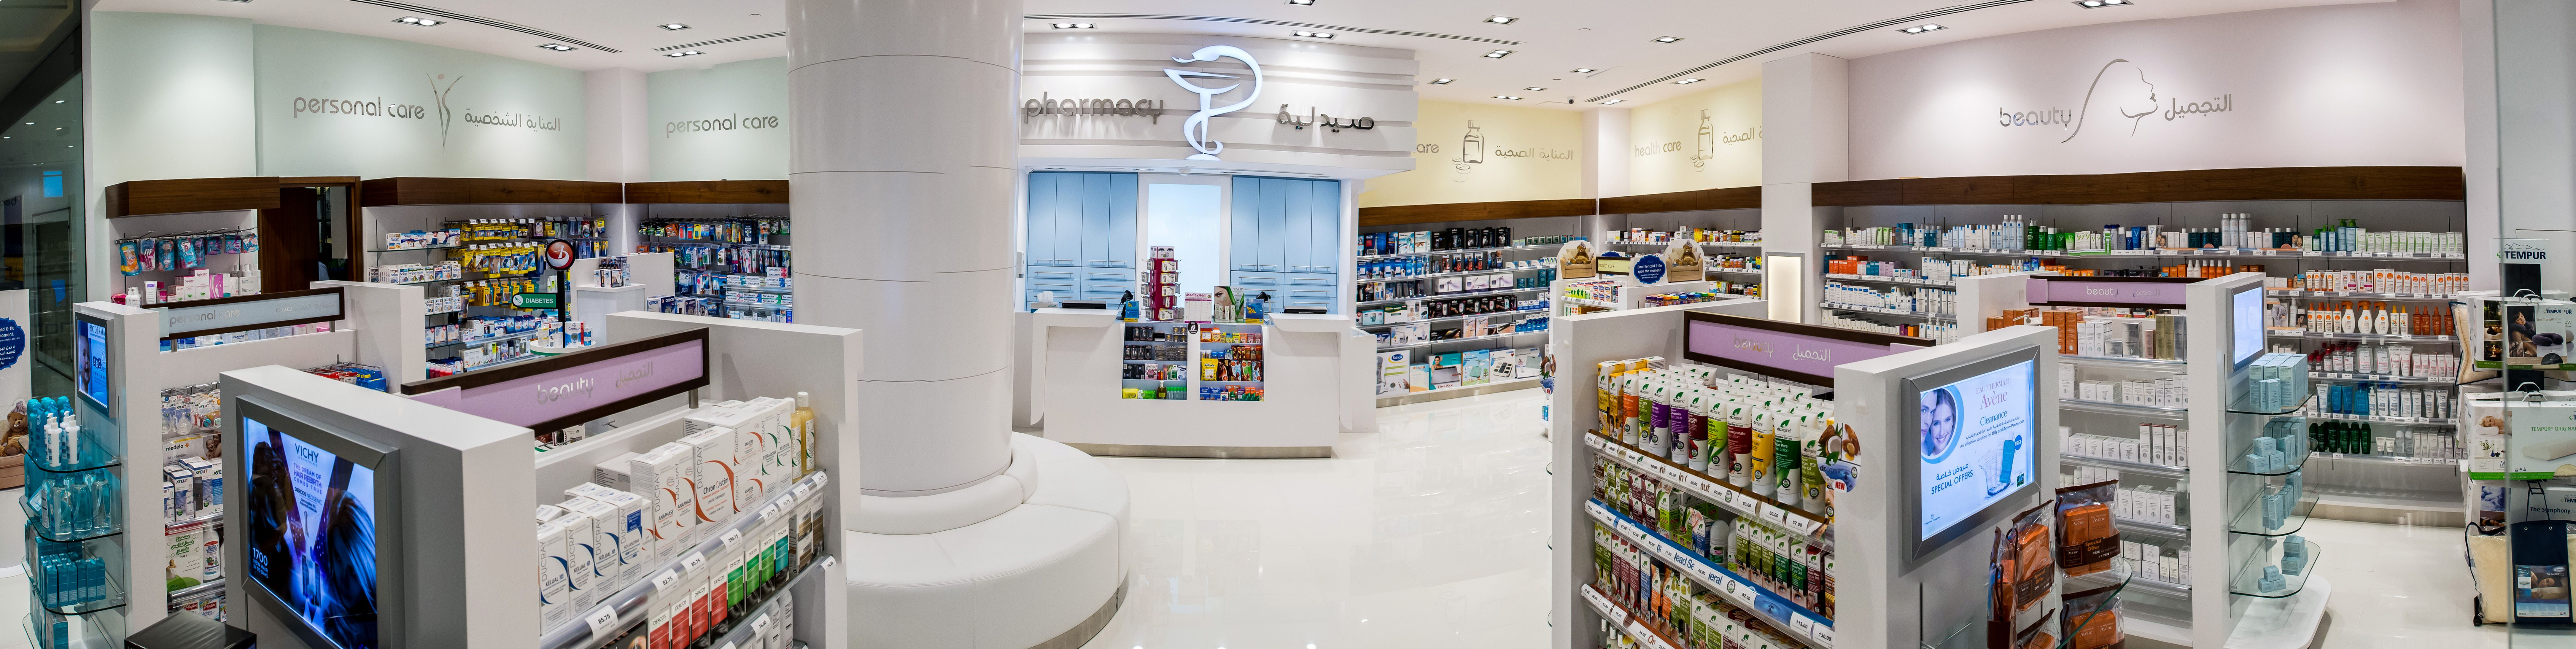 BinSina Pharmacy has over 15 conveniently located branches